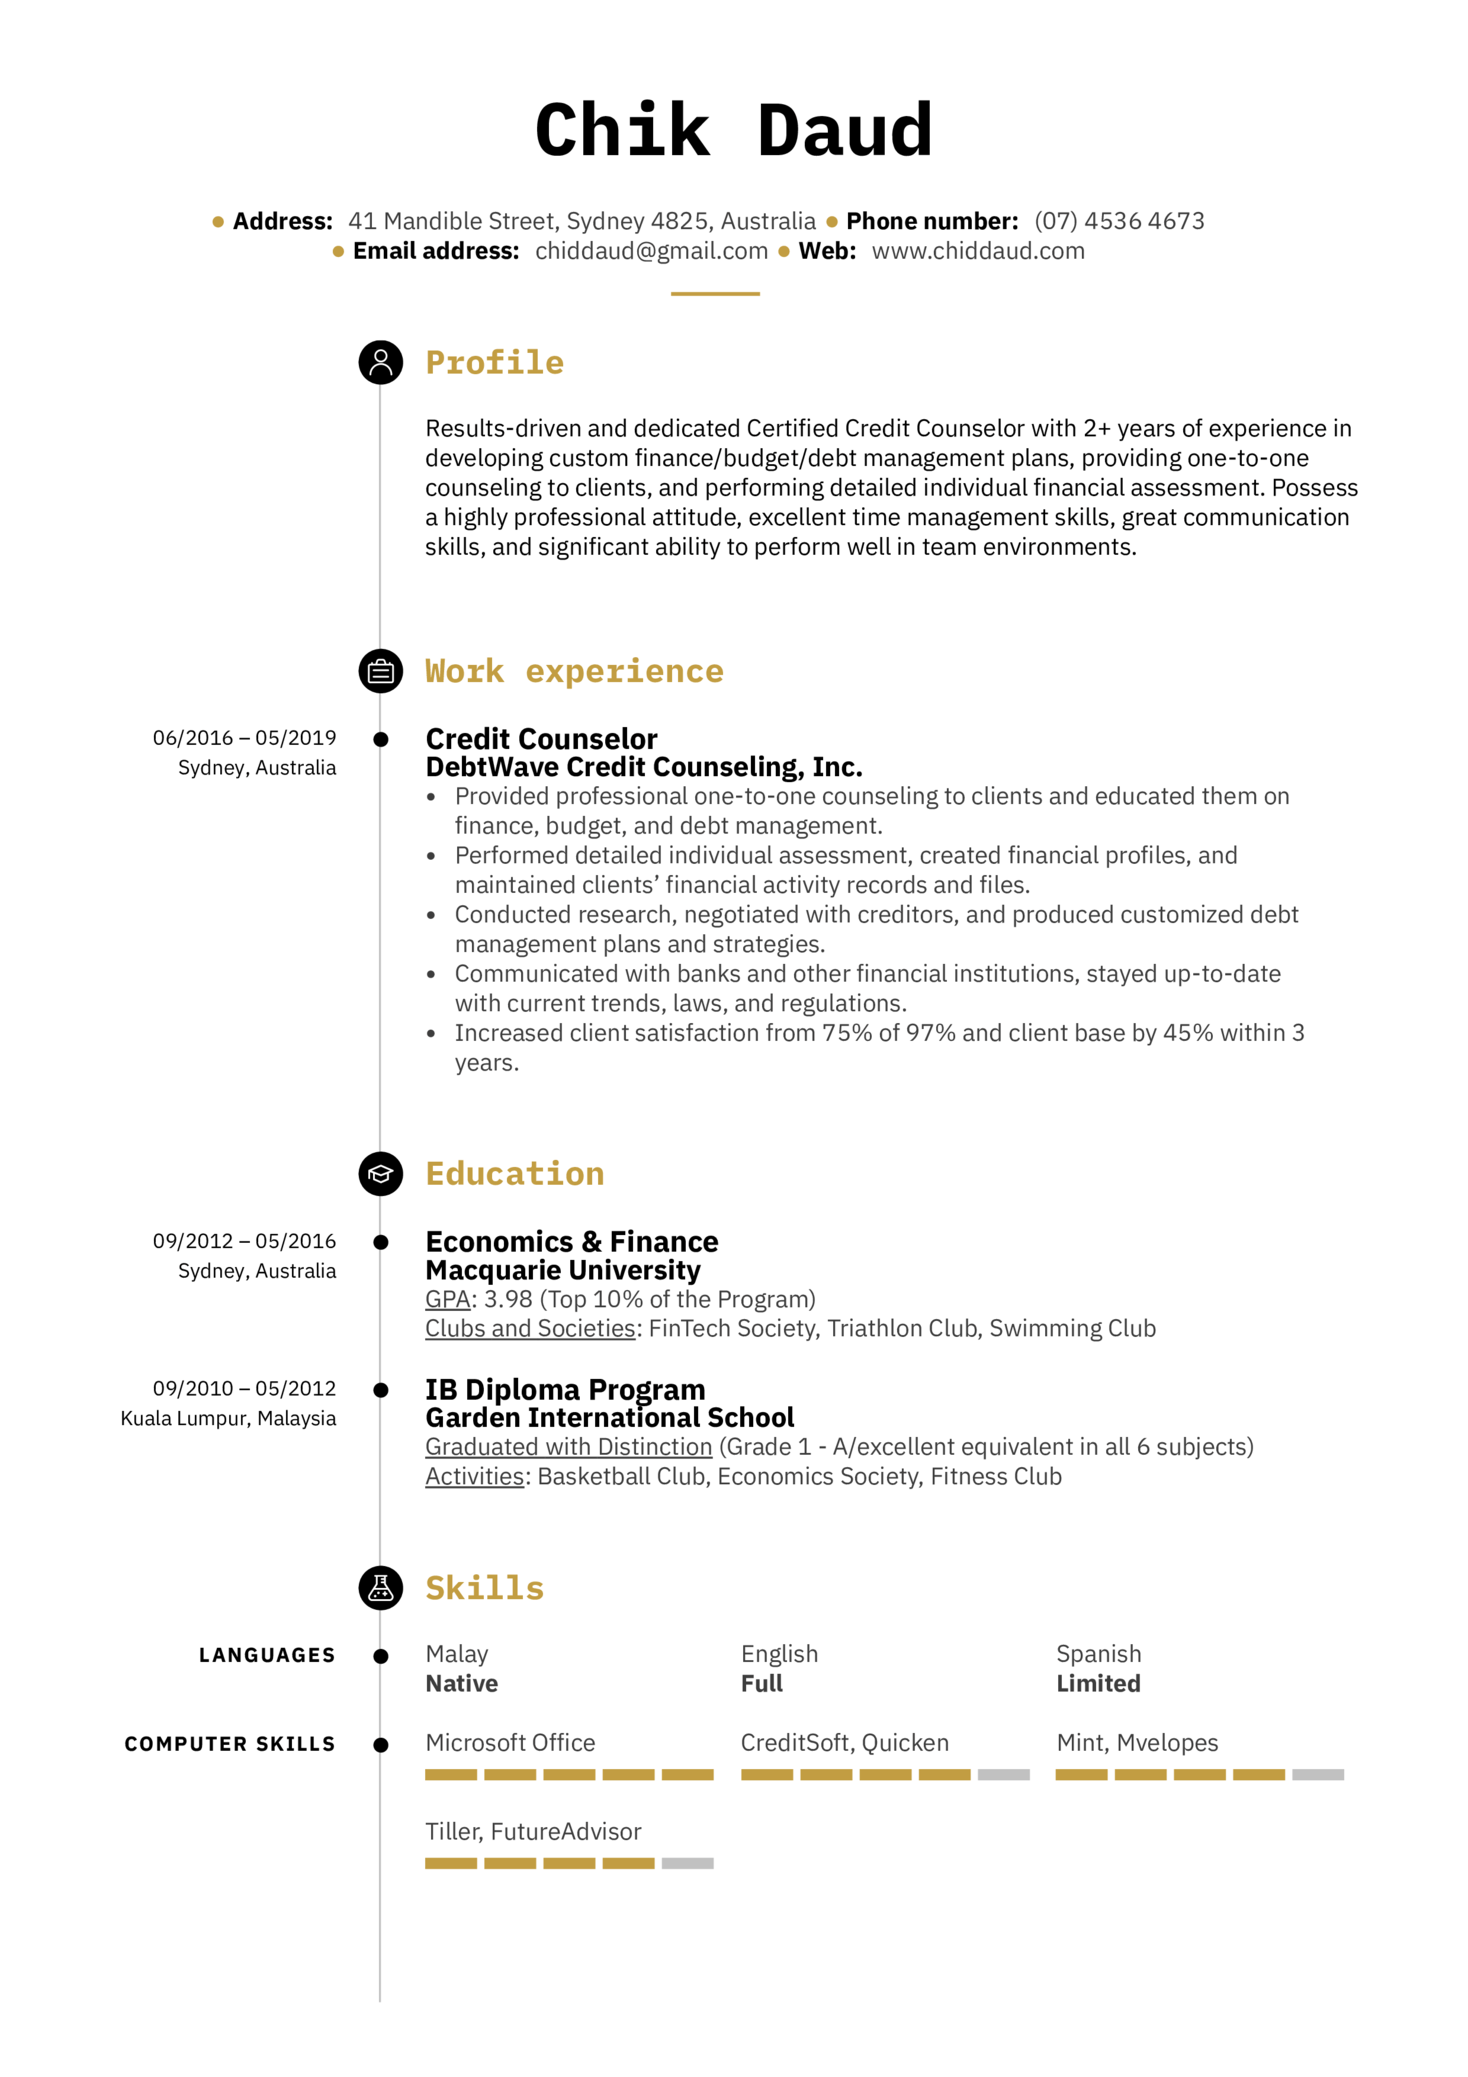 Credit Counselor Resume Example (Part 1)